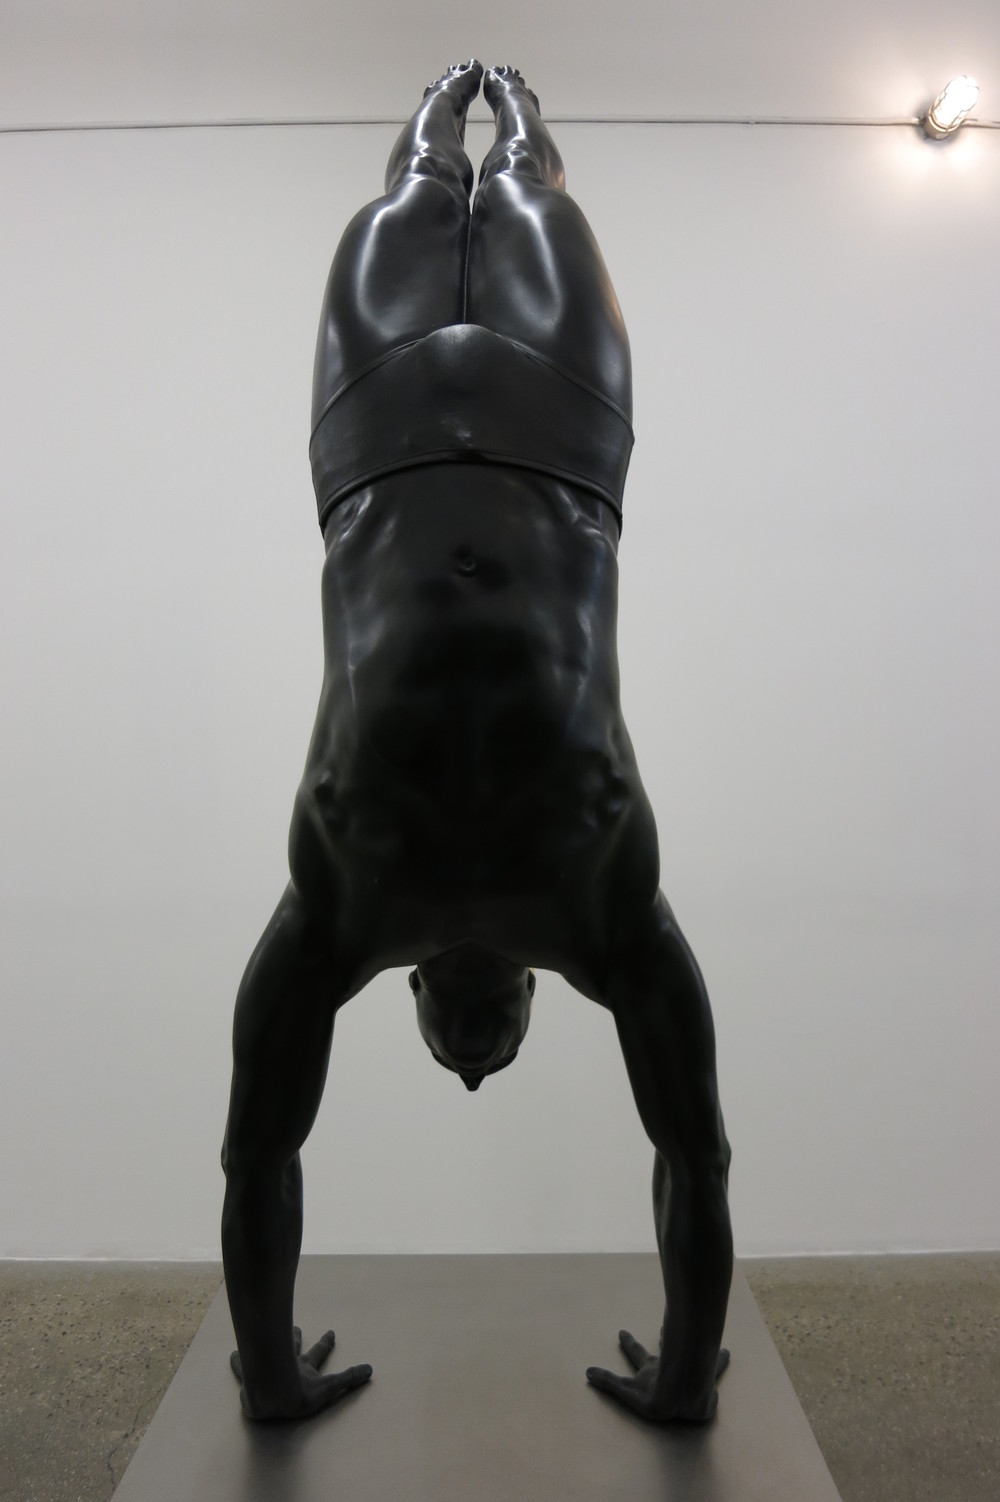 Diver  , 2011. Oil on Bronze. 77 x 25 x 11 inches.